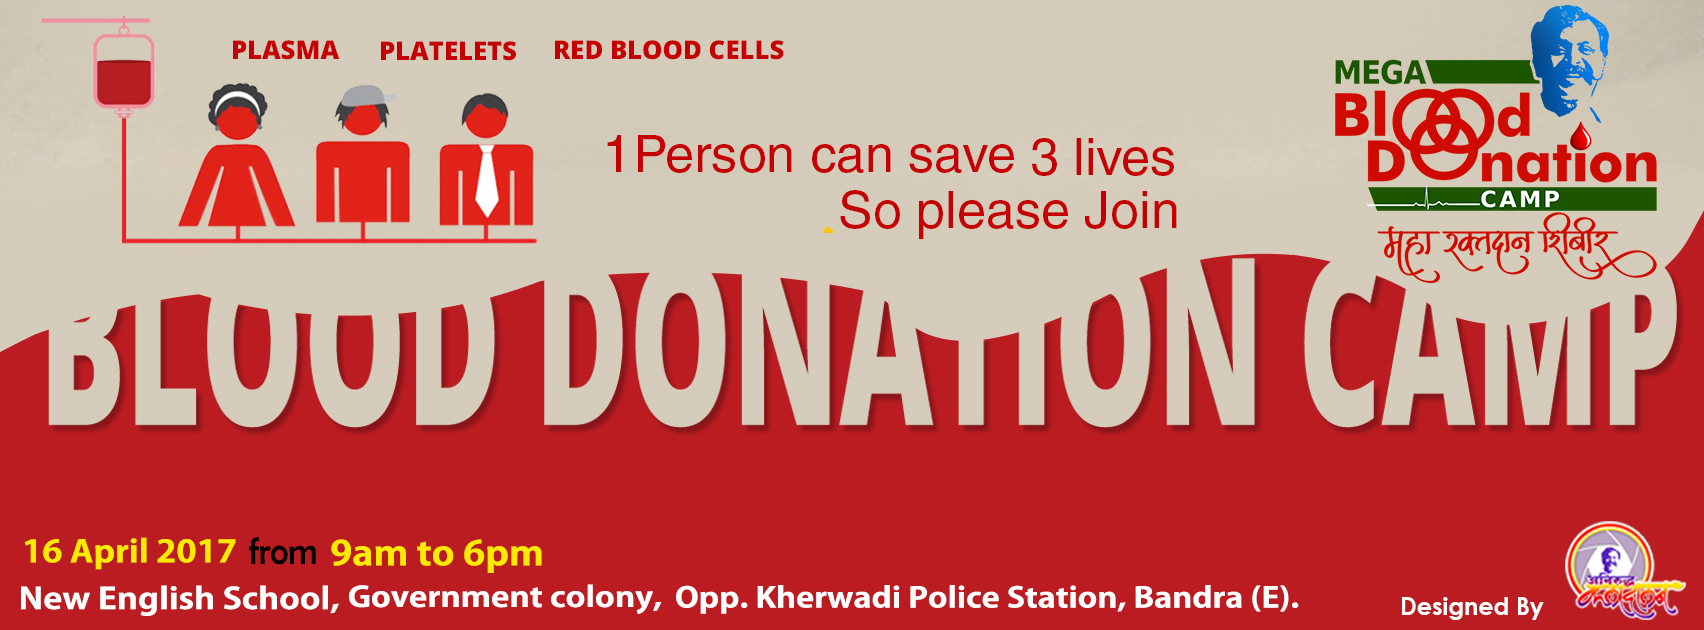 a blood donation camp